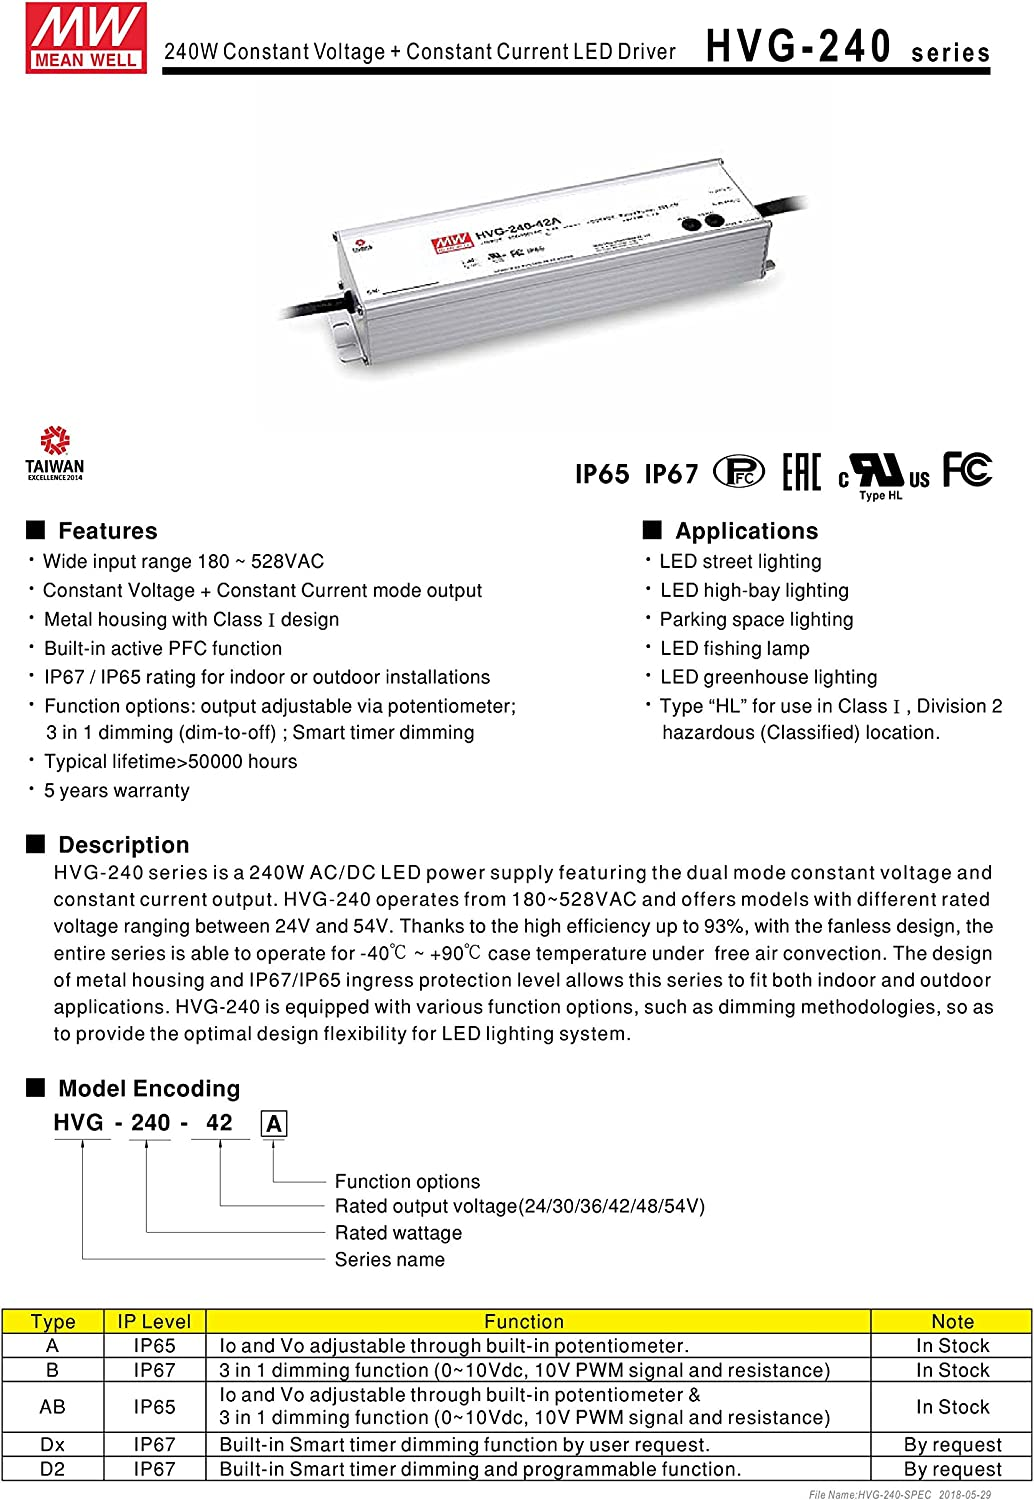 Branded goods Mean Well Original HVG-240-24A Constant Selling and selling Voltage Current